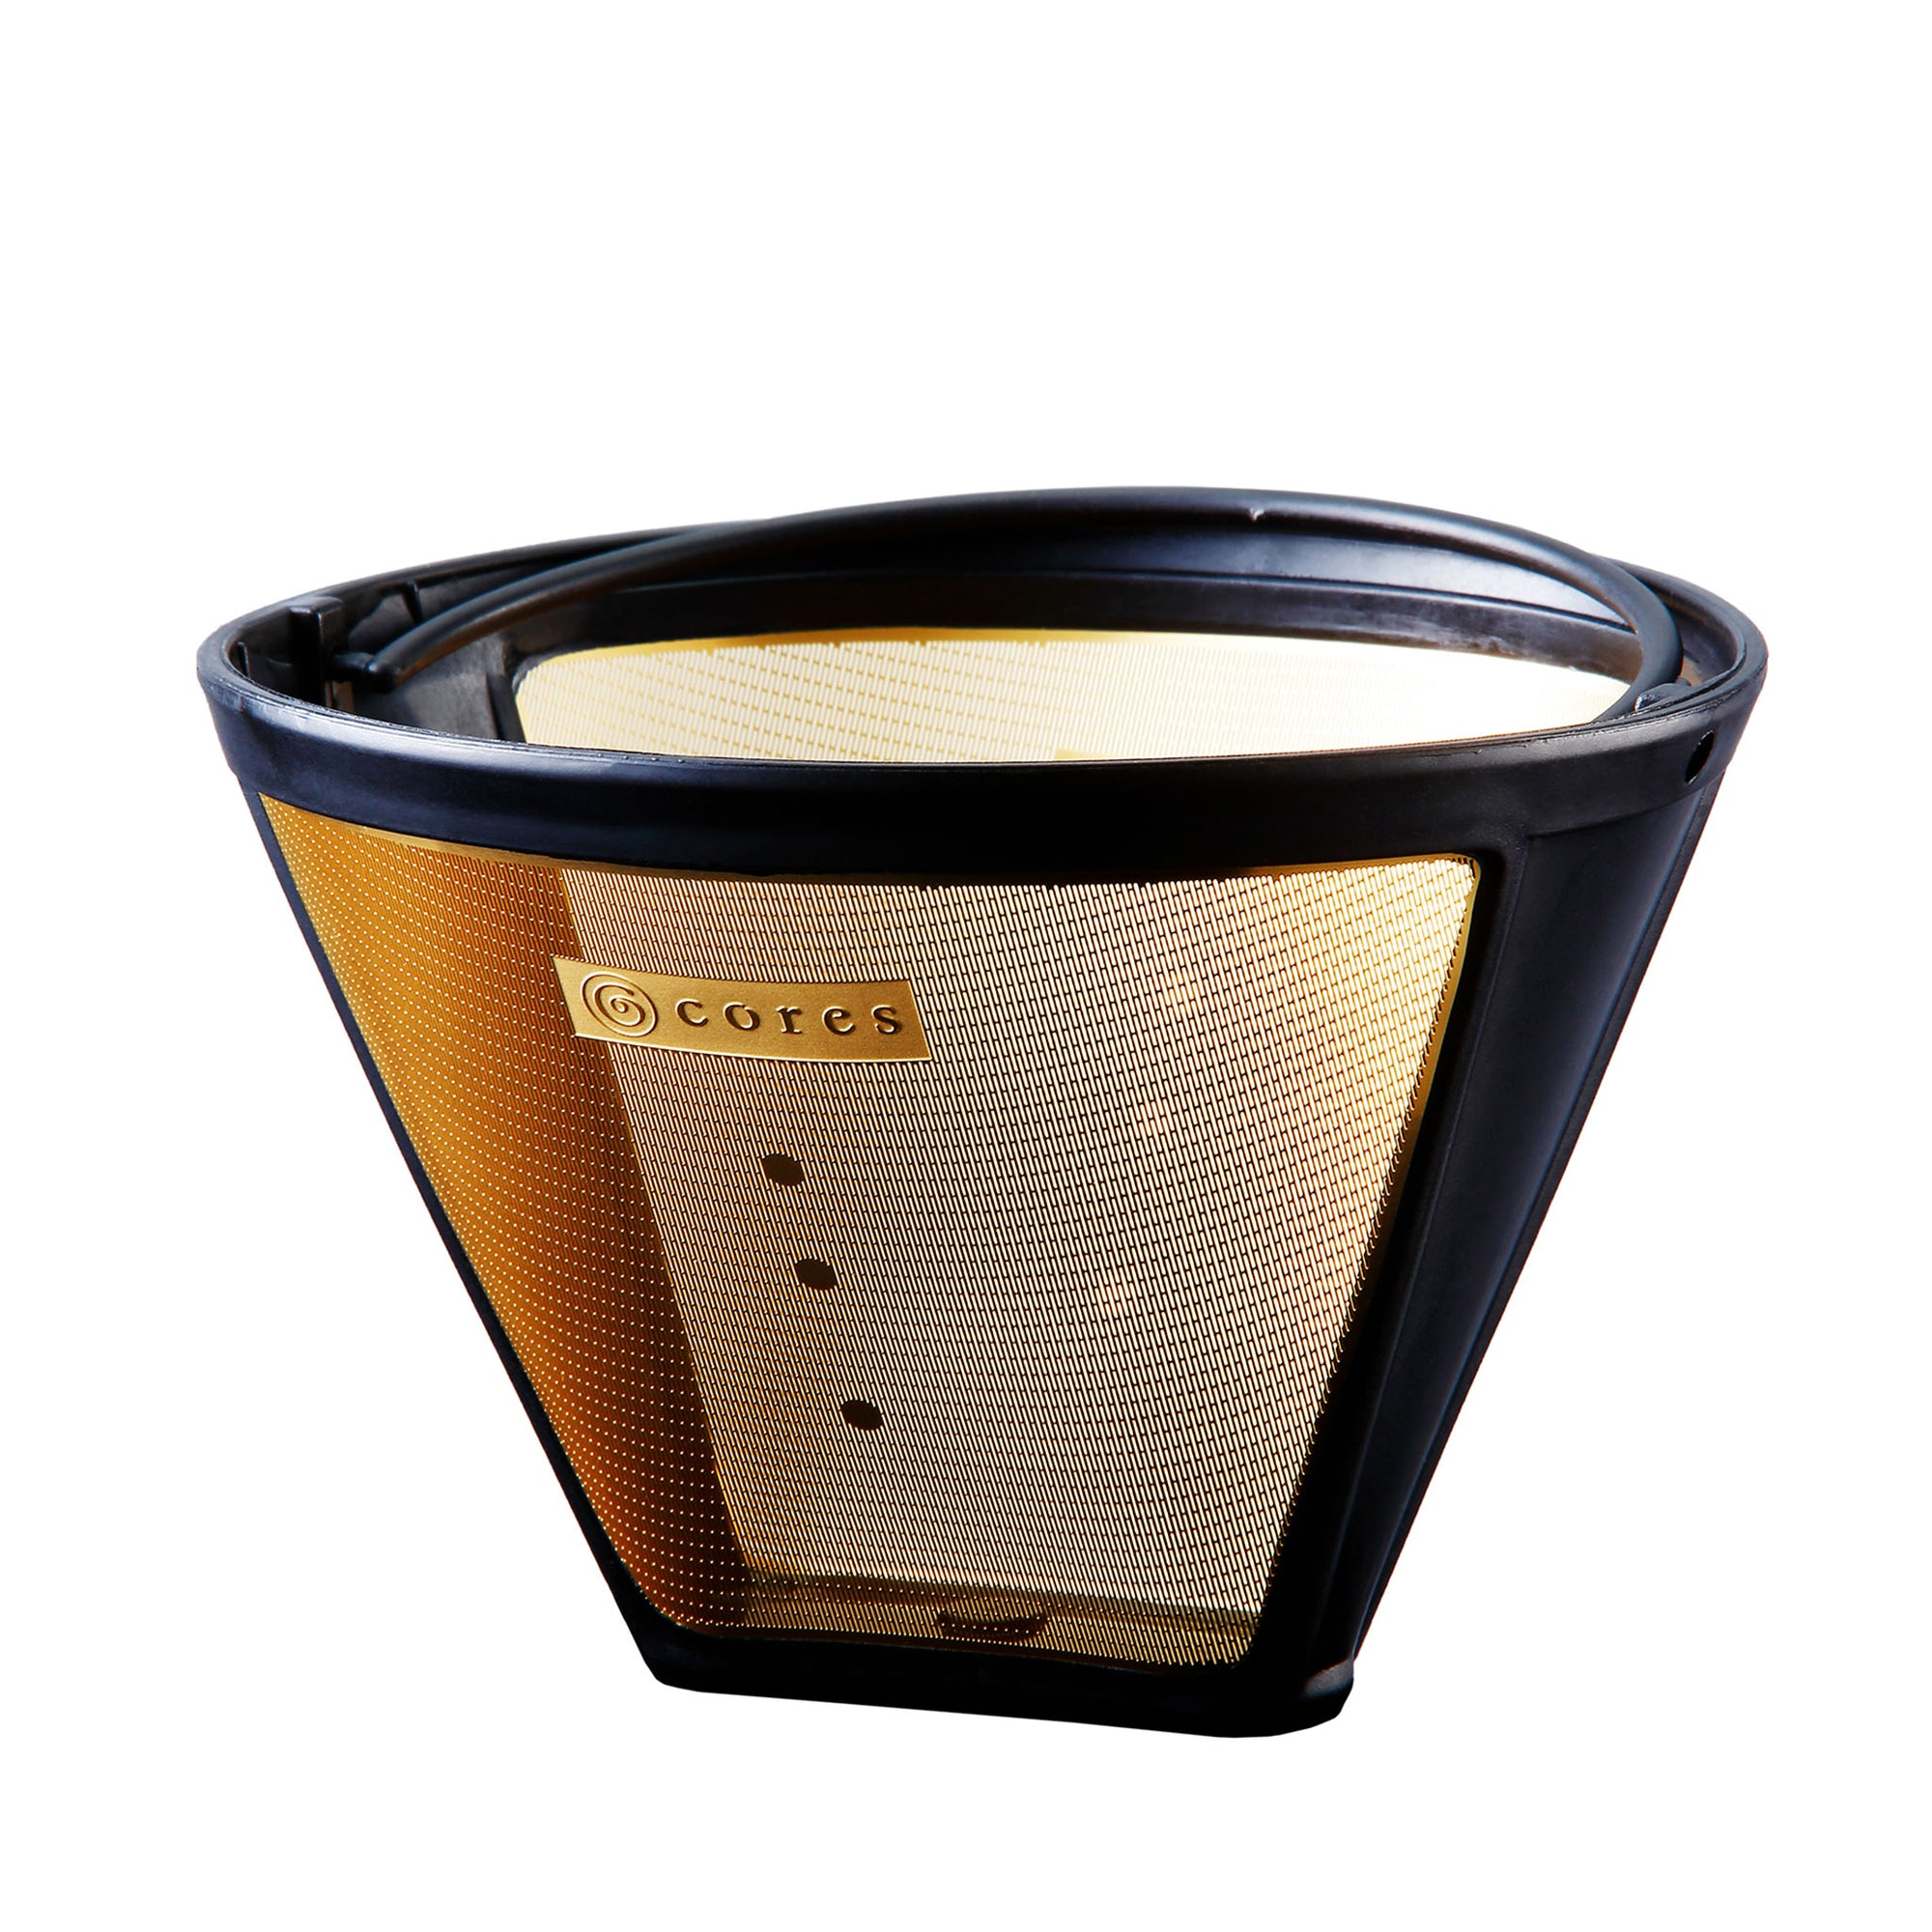 Filter Cores Gold KF4 - Espresso Gear